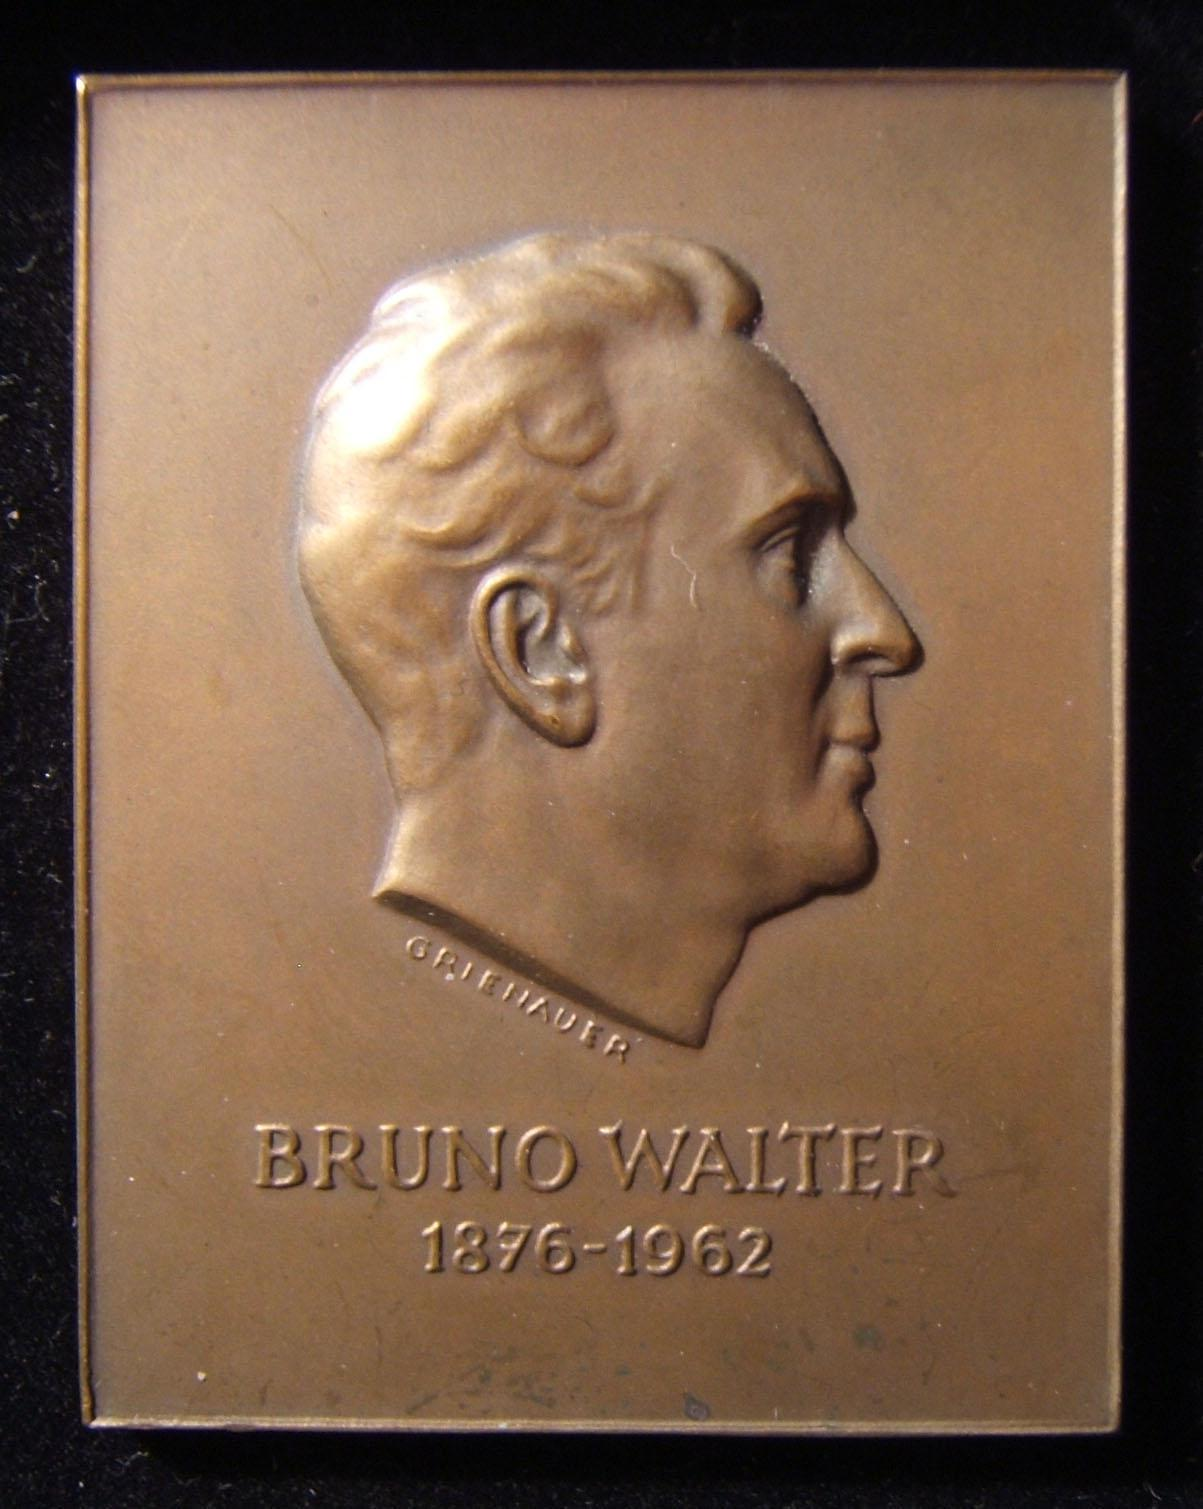 Austria: Bruno Walter profile bronze uniface plaquette by Edwin Grienauer, c. 1962; size: 47 x 60.5mm; weight: 70.1g. Walter (1876-1962) was a German-born Jewish conductor, who con